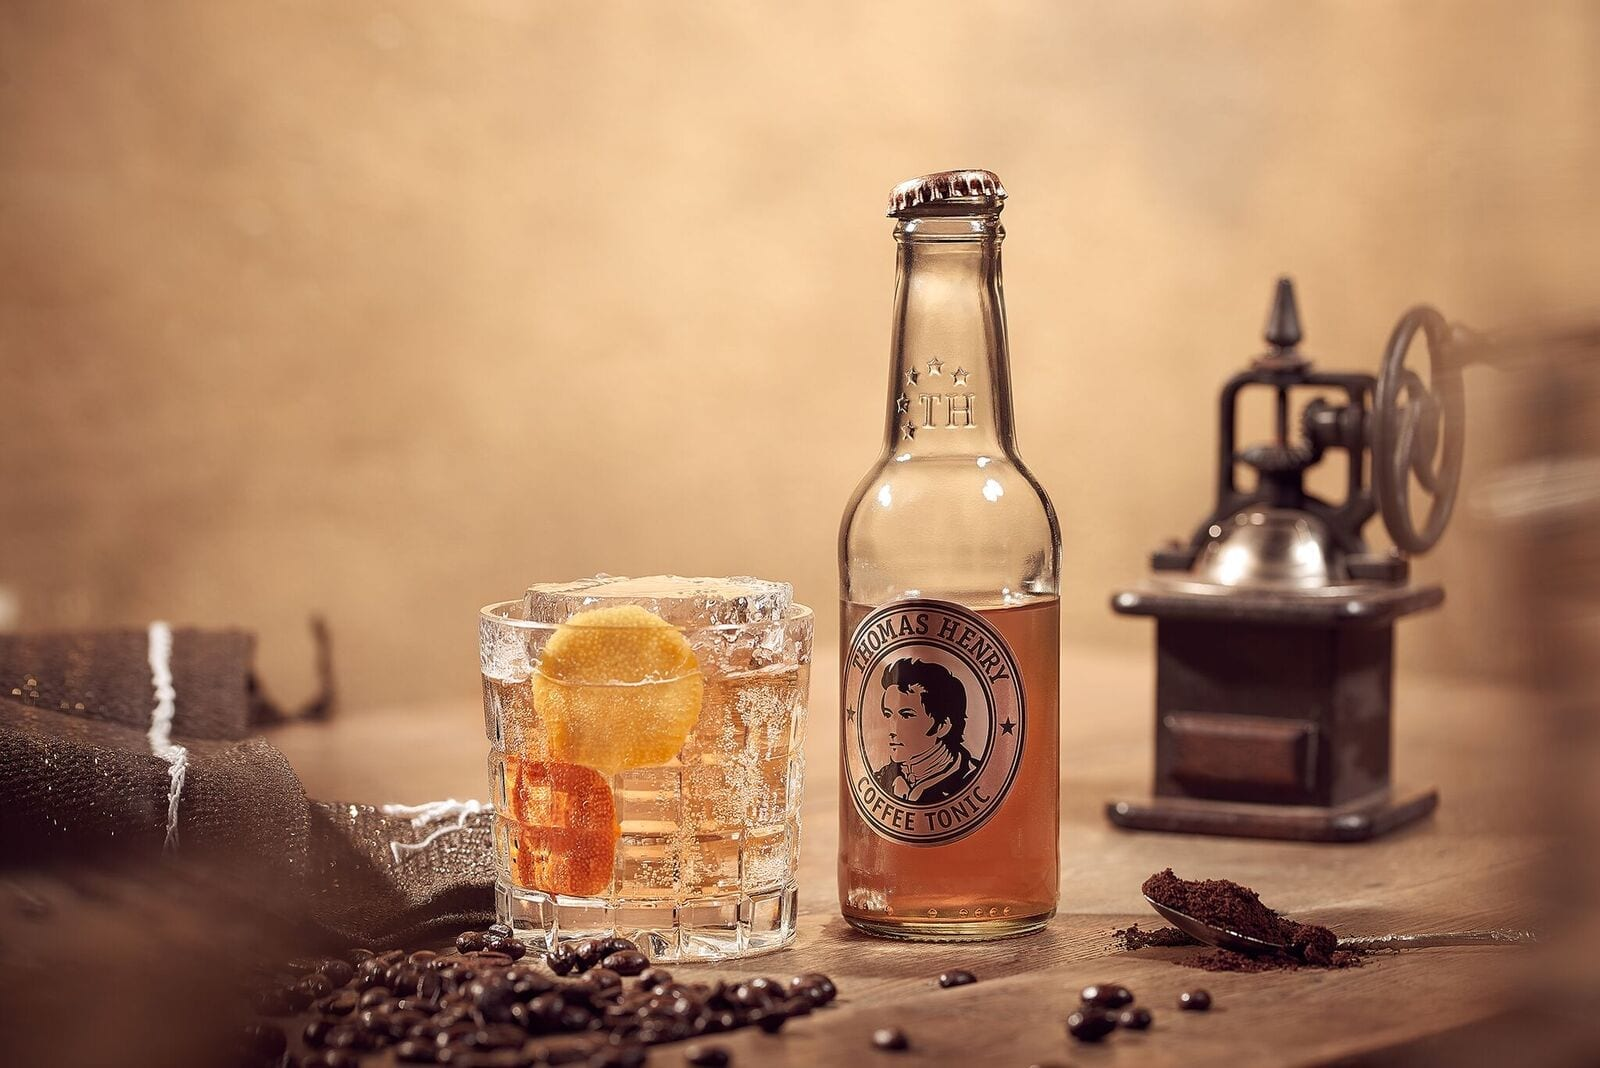 Thomas Henry Coffee Tonic